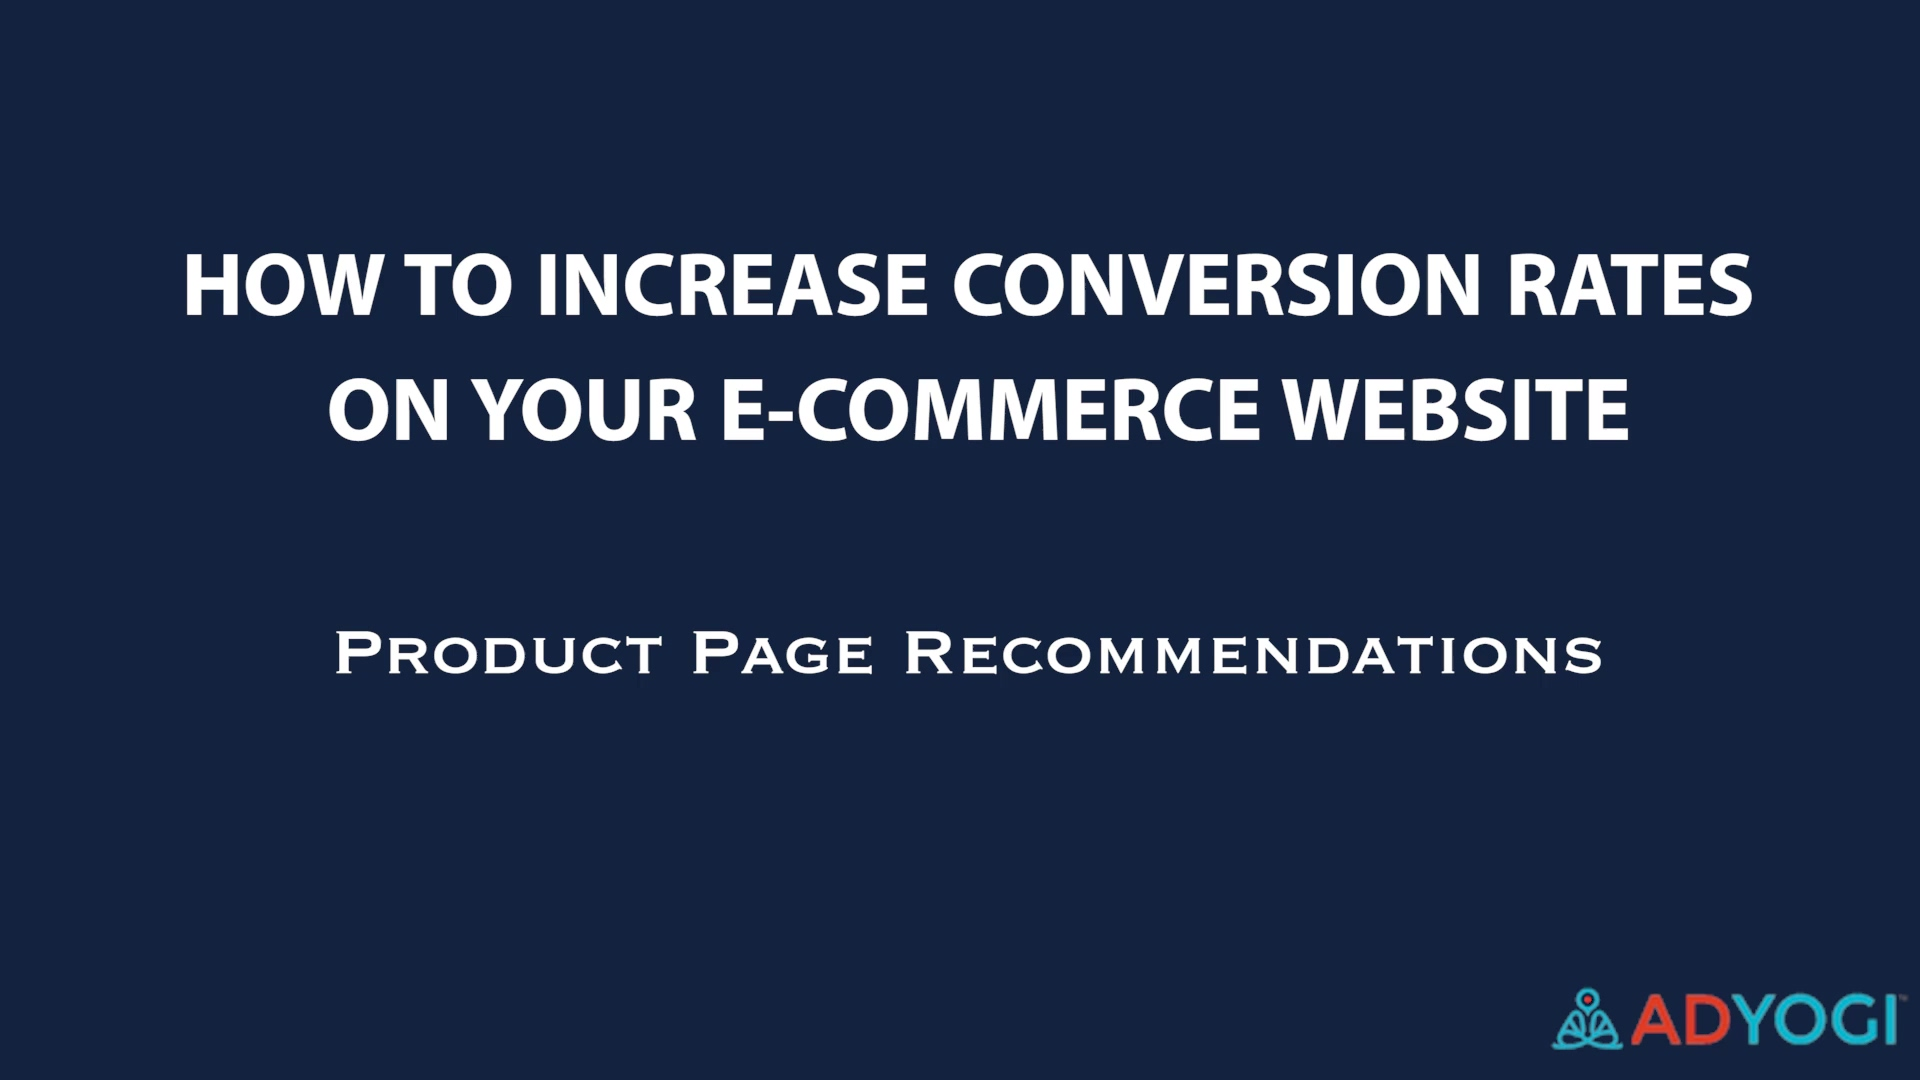 Product Page_Recommendations-1